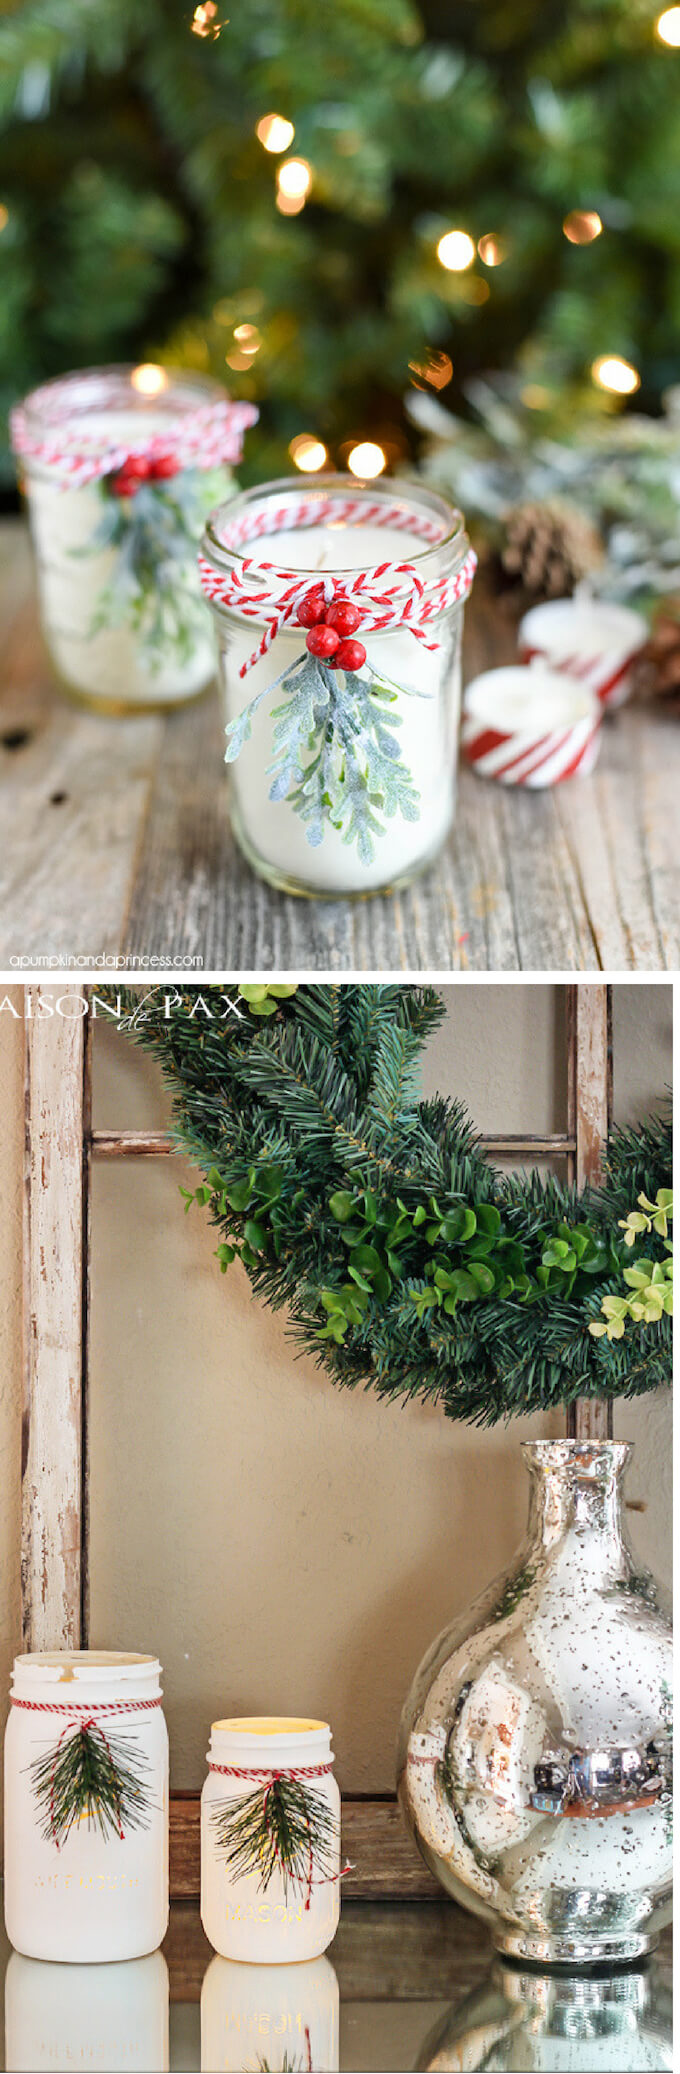 Mason Jar Candles | Best Elegant Christmas Centerpieces & Designs | Farmfoodfamily.com